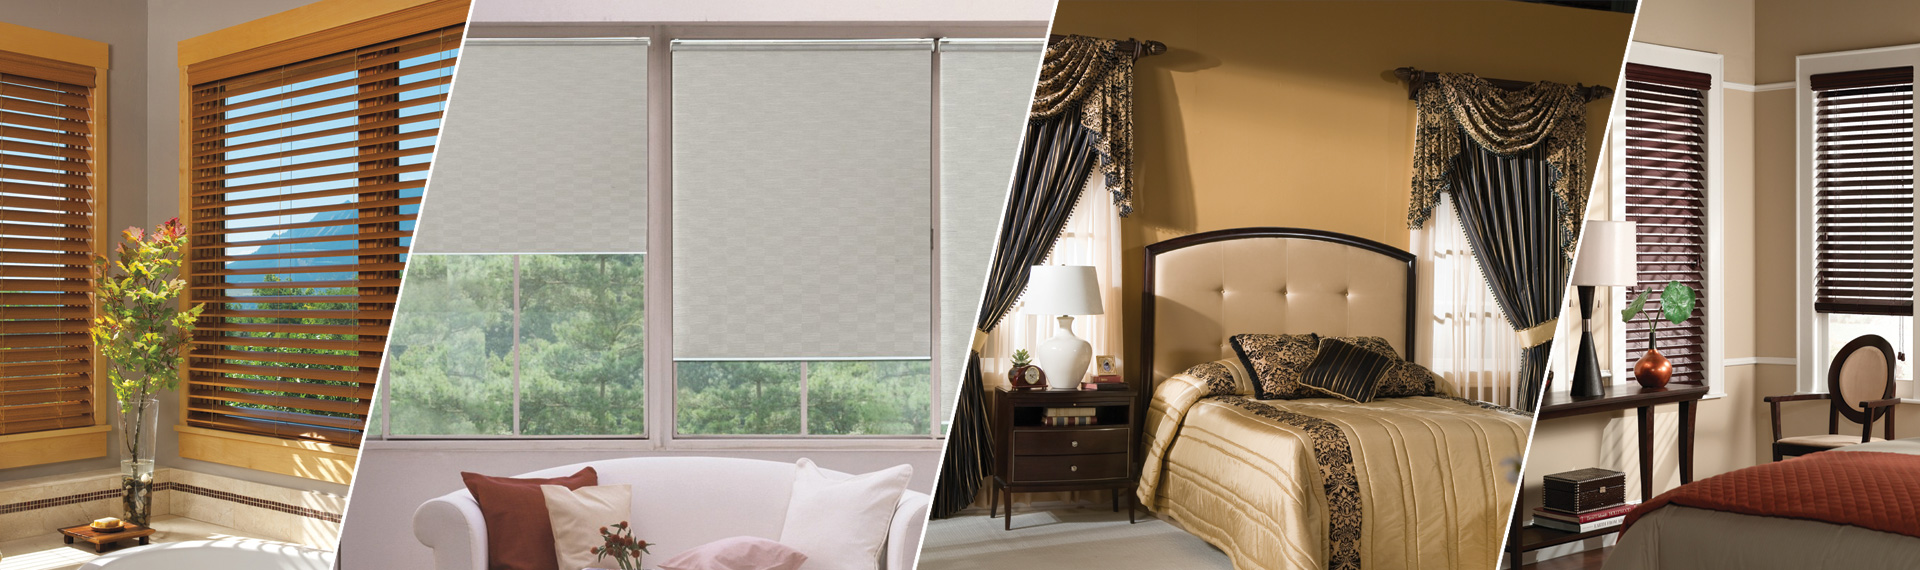 Best Blinds & Shades